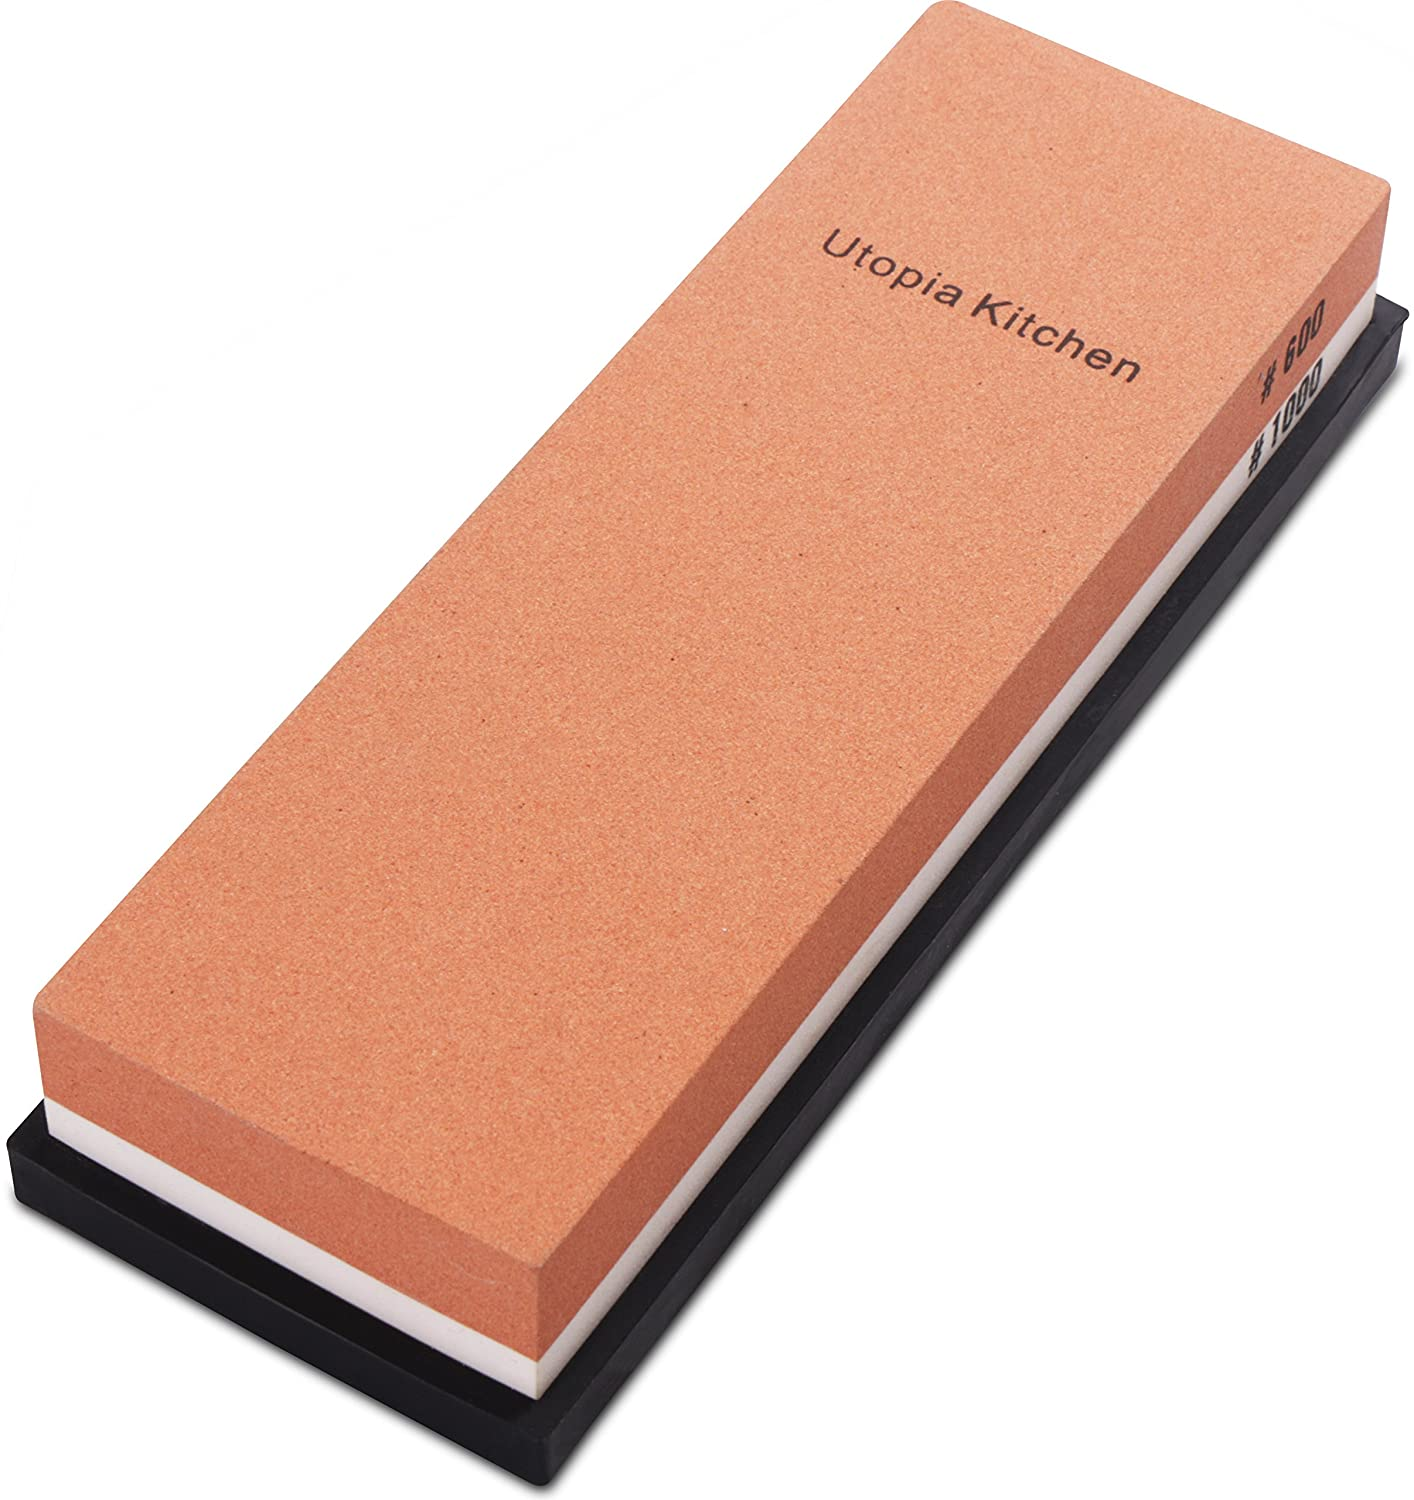 Utopia Kitchen Double-sided Knife Sharpening Stone